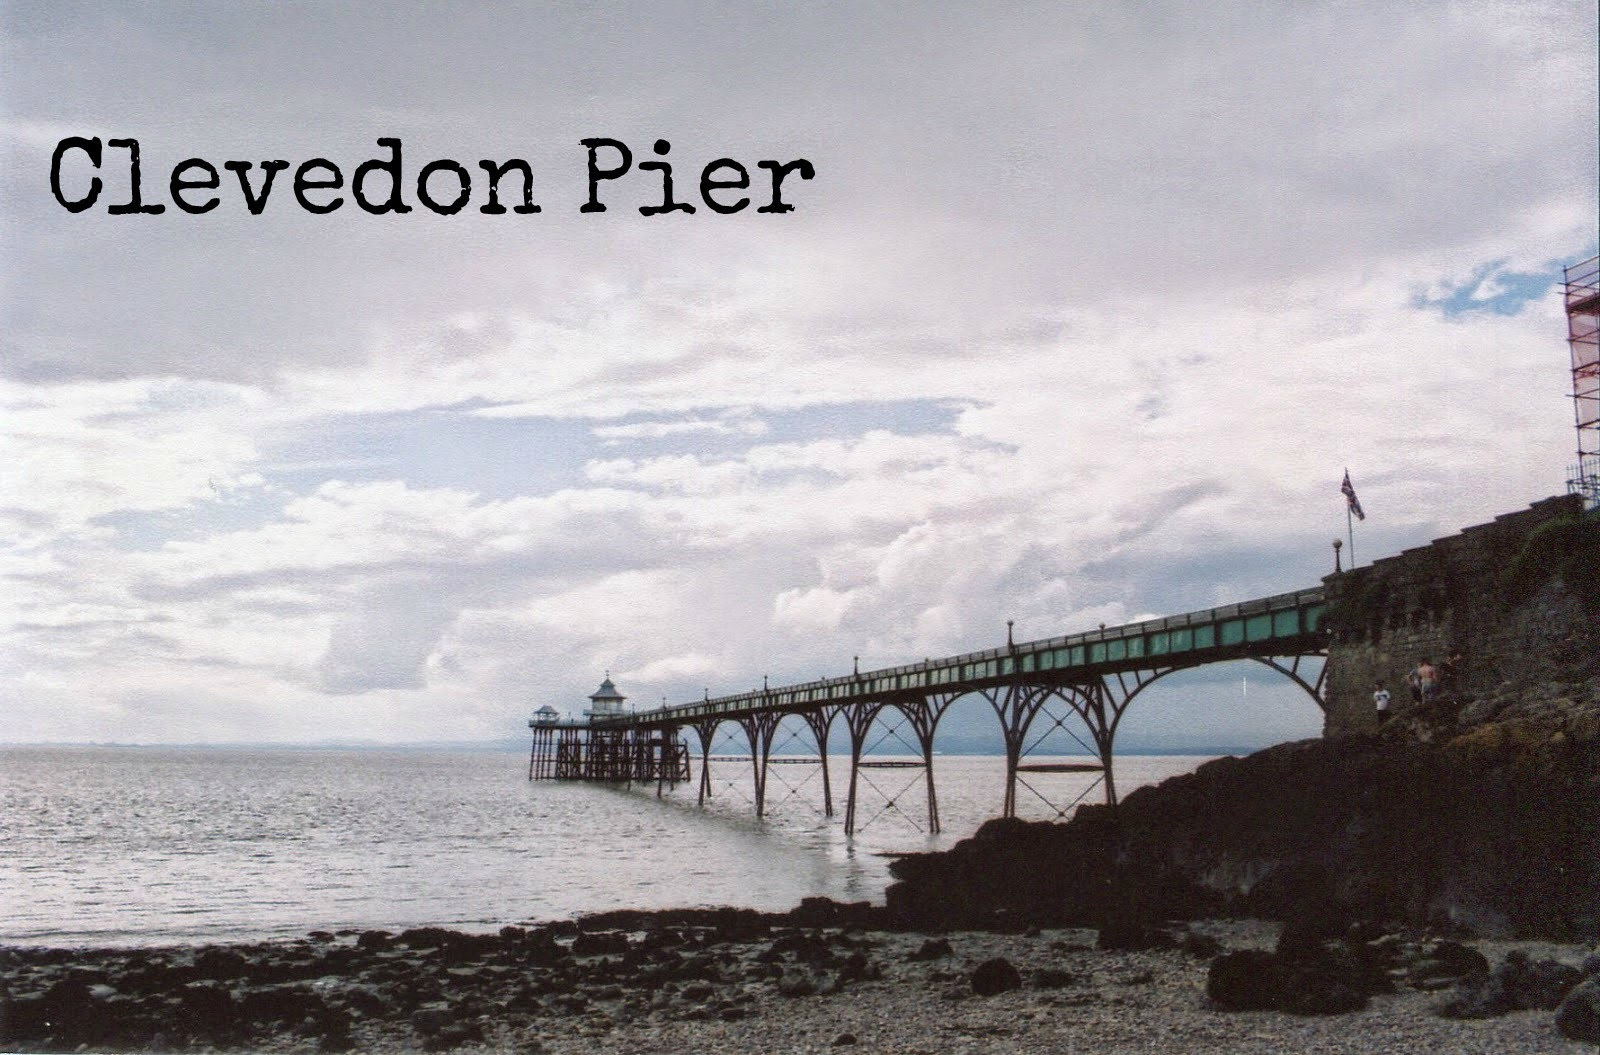 http://talesonfilm.blogspot.co.uk/2014/07/clevedon-pier.html